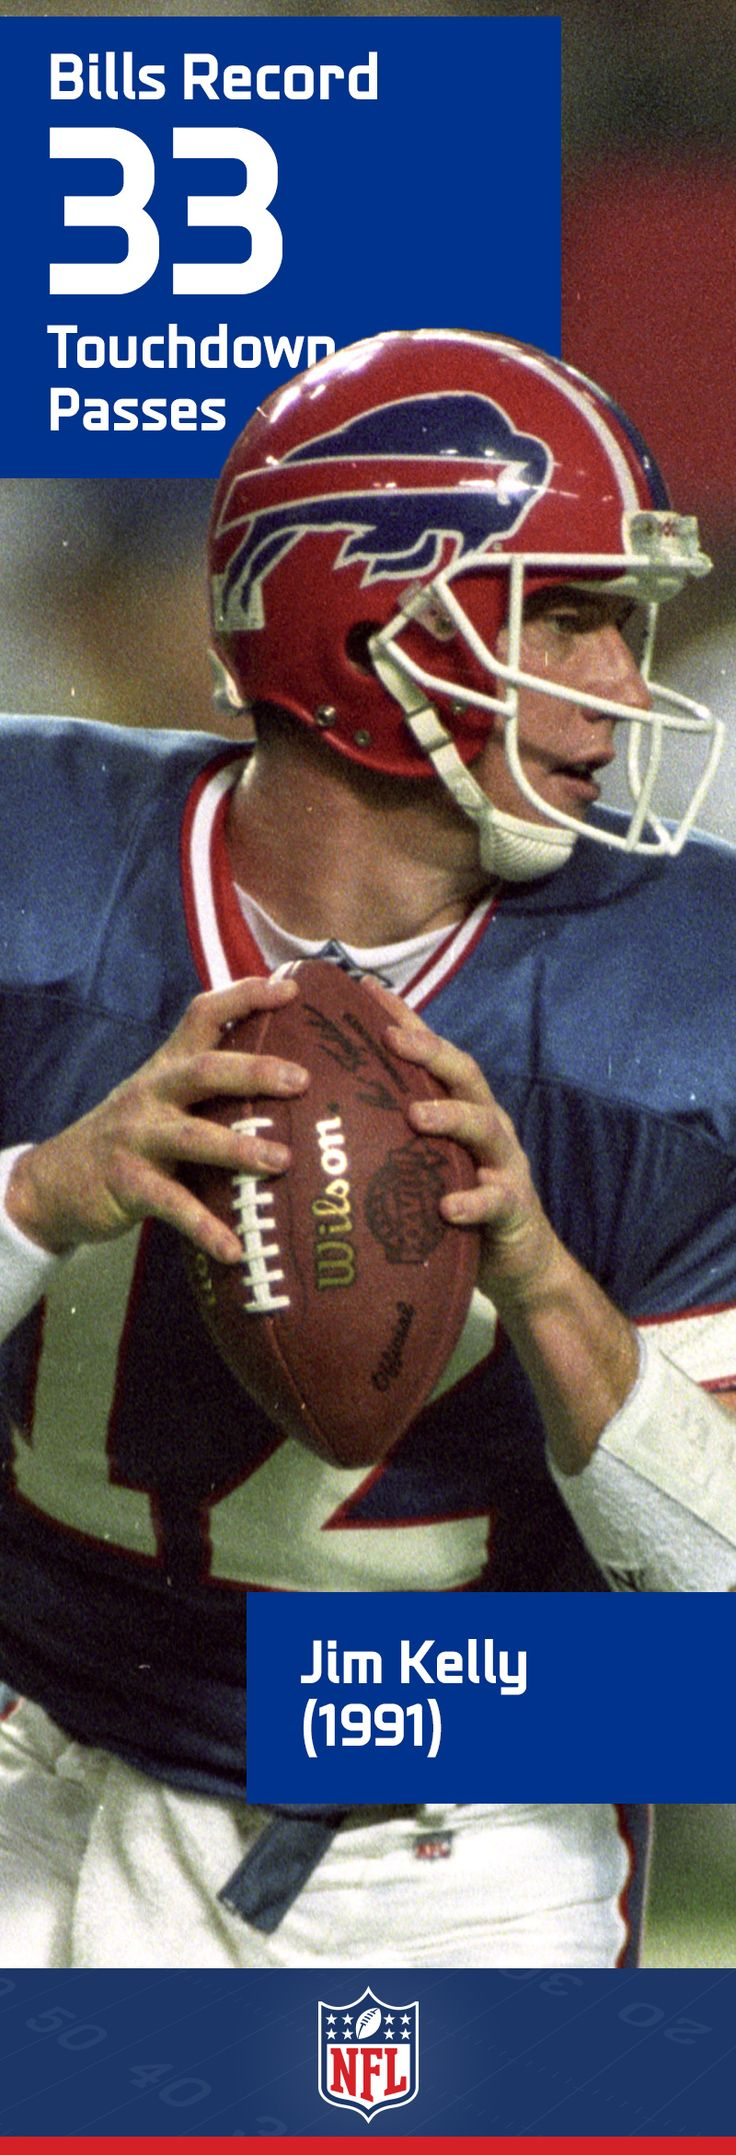 A Hall of Fame quarterback and fan favorite, Jim Kelly rightfully holds the Buffalo Bills team record with 33 touchdown passes in 1991.